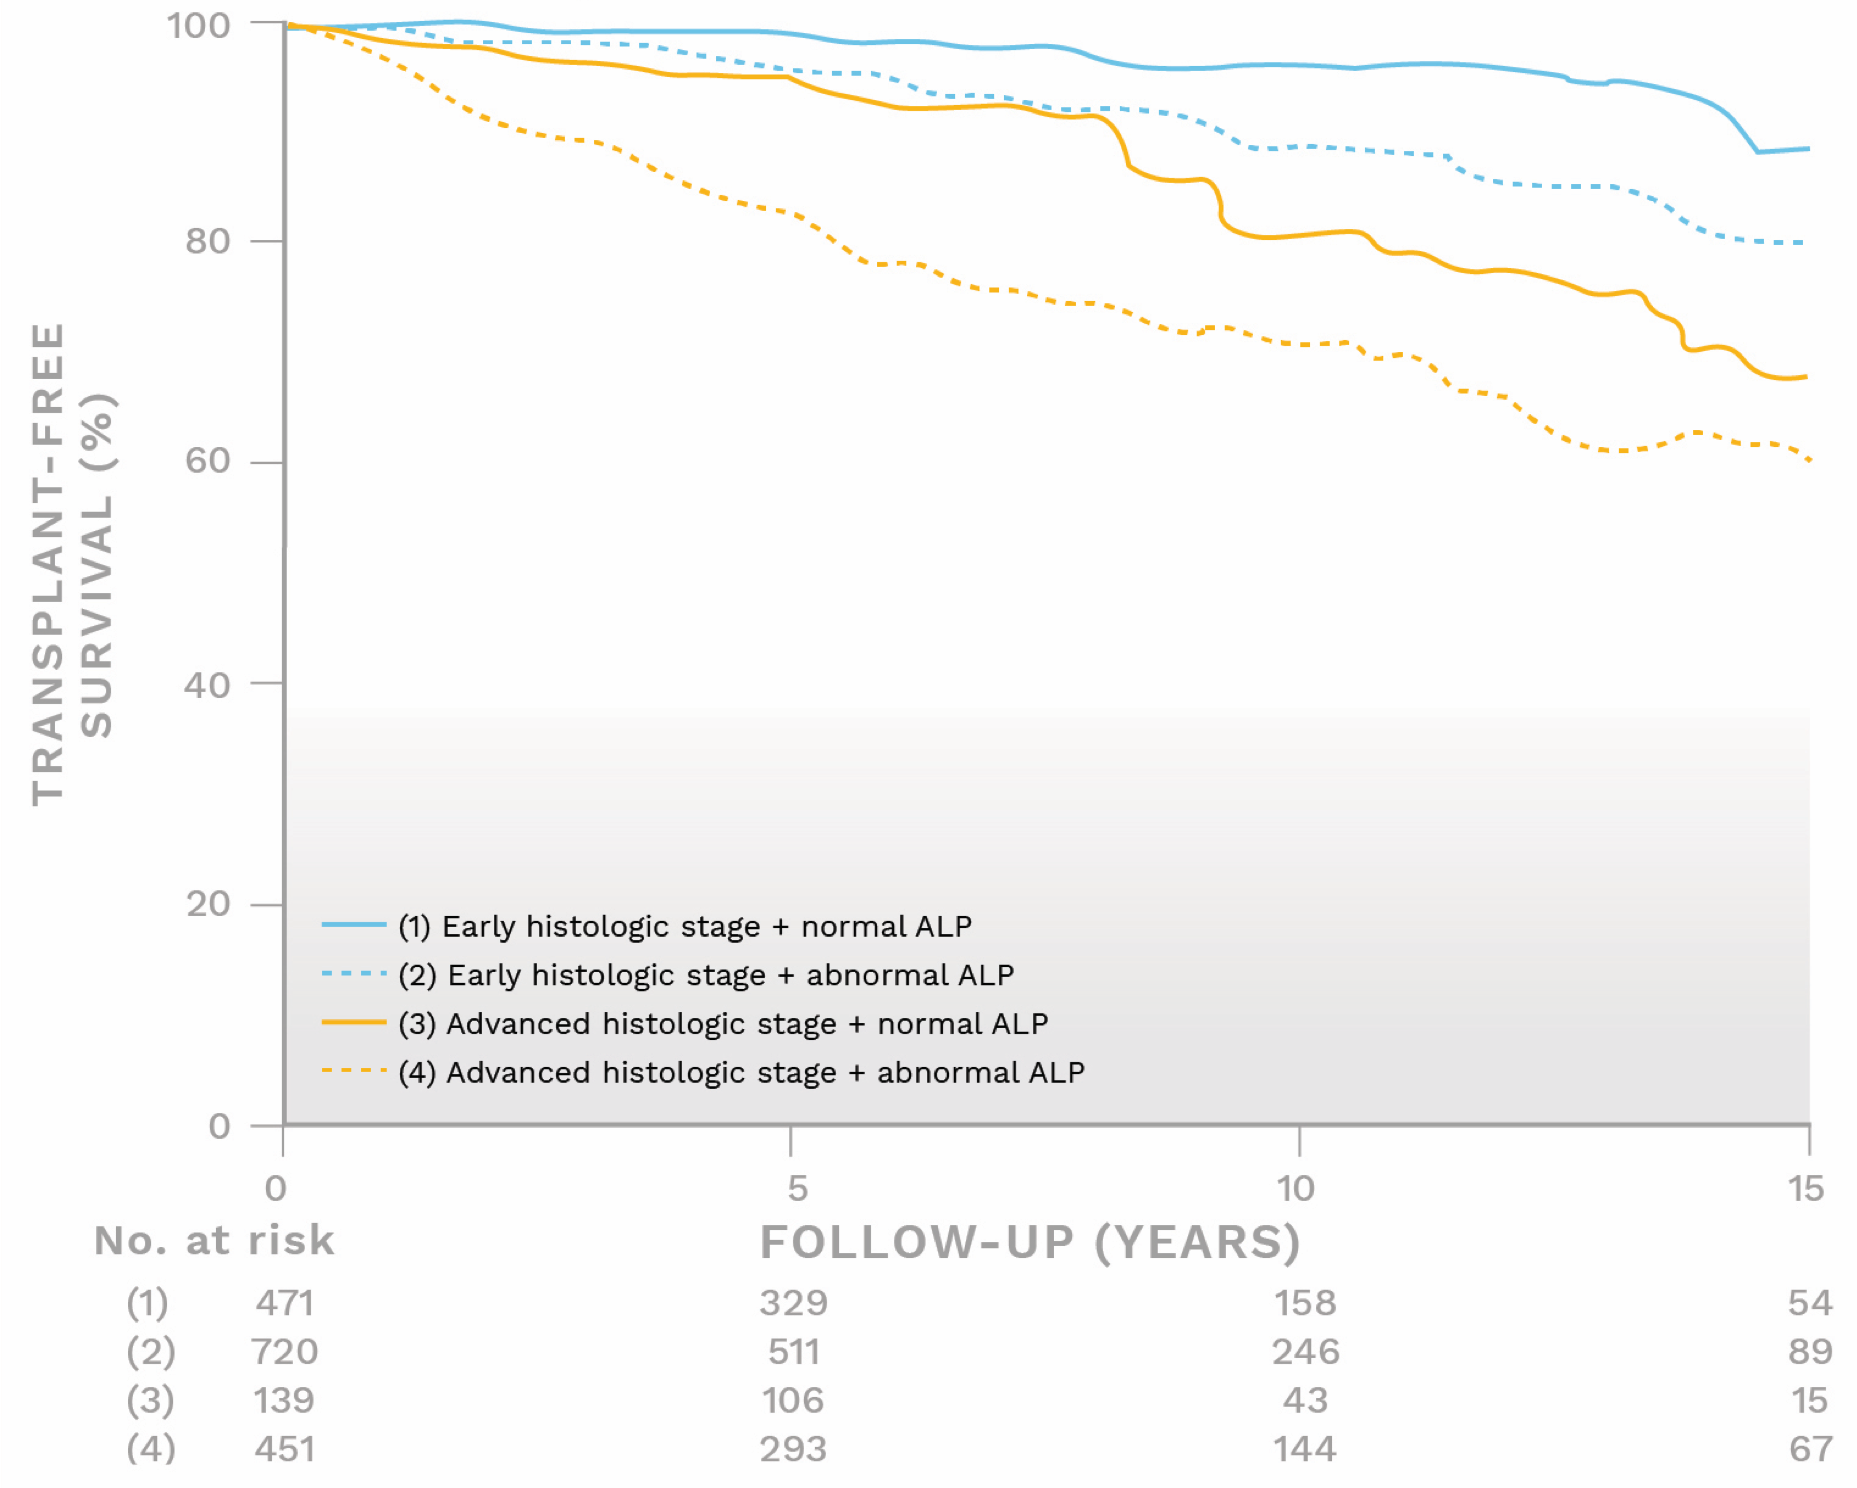 Graph showing transplant-free survival rate for different ALP levels and stages of fibrosis